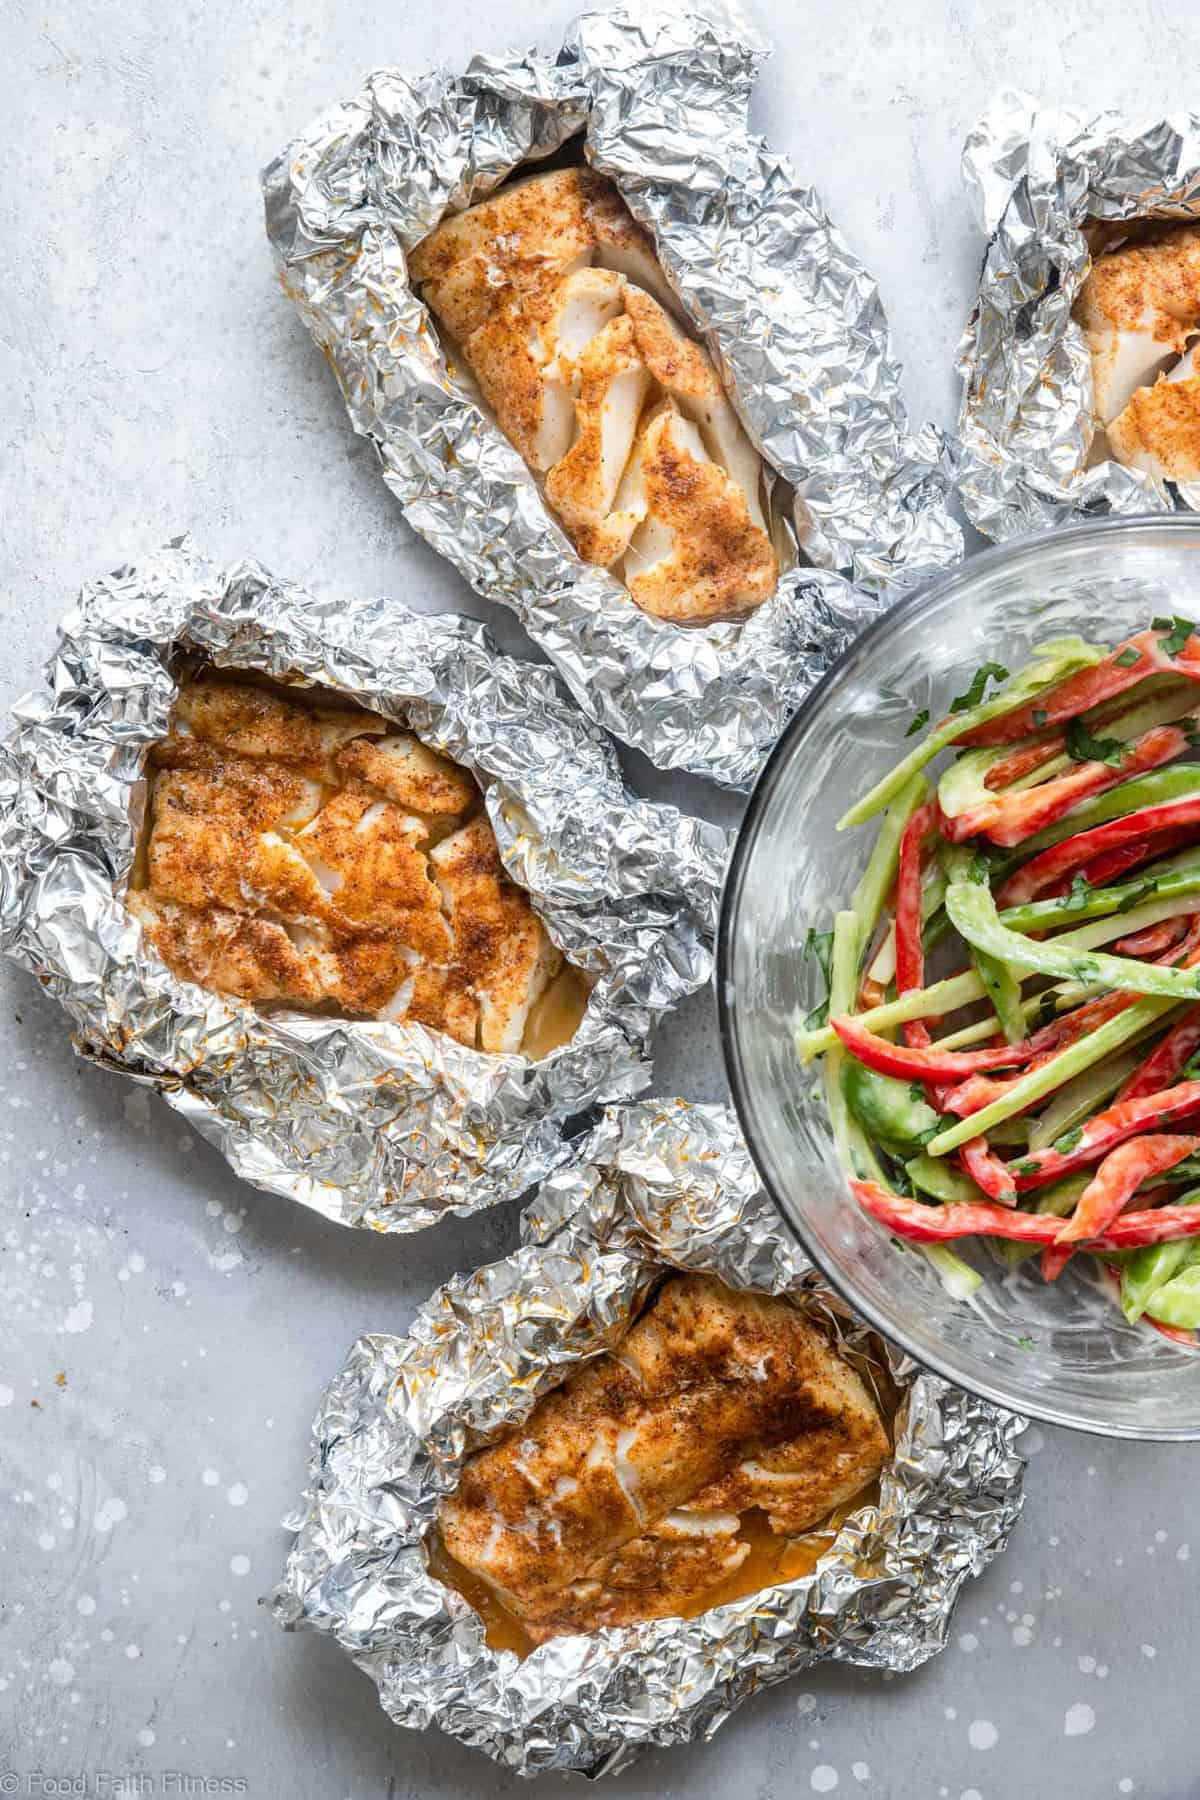 Cod fish on the grill in tinfoil